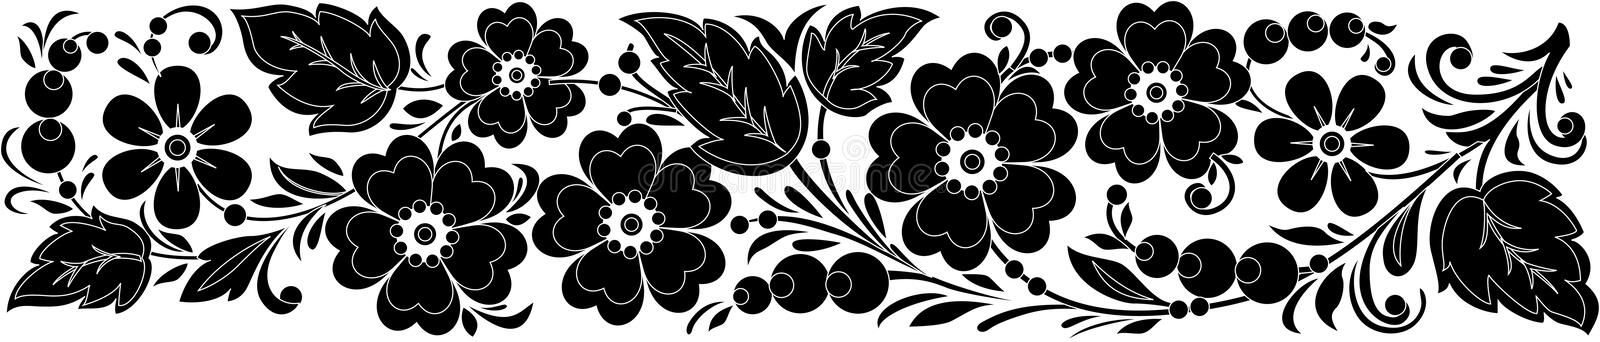 Download Vector Black-and-white Hohloma Stock Vector - Image: 12940209